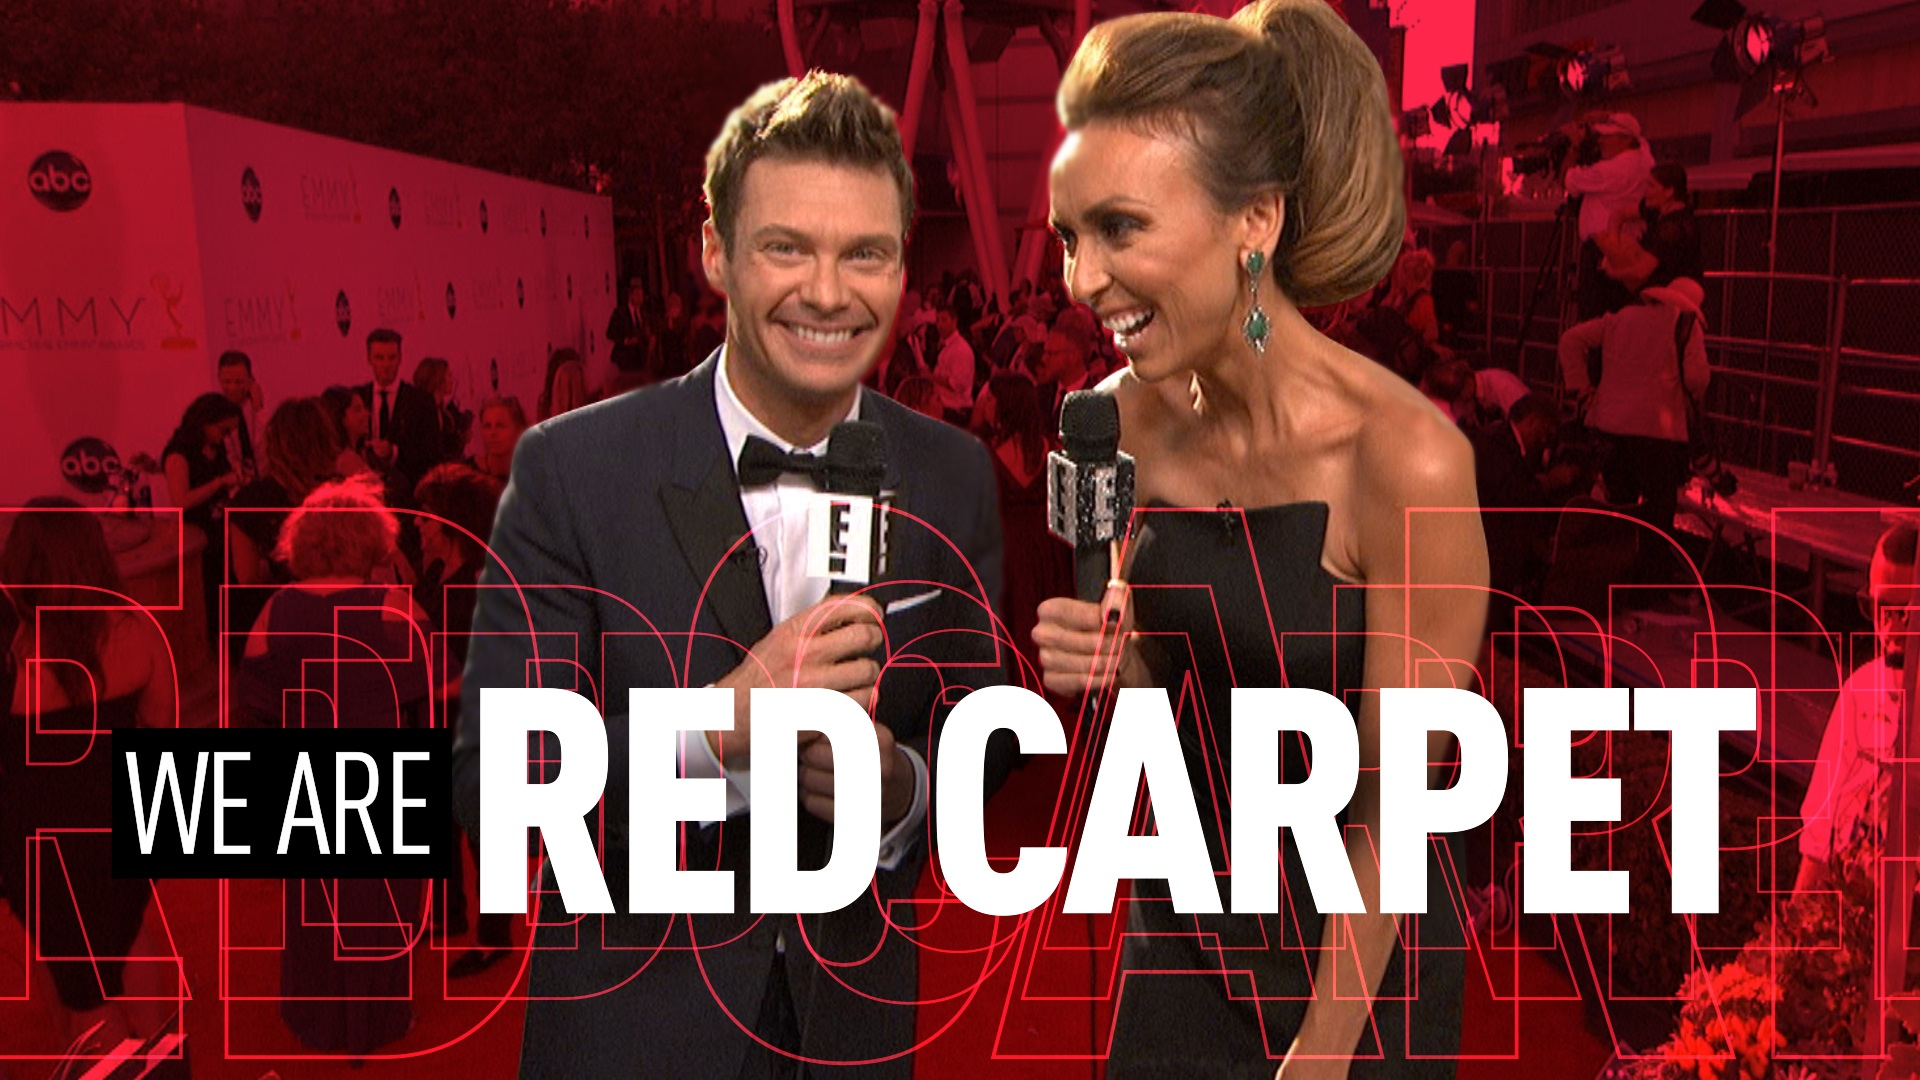 WE ARE RED CARPET - E! ENTERTAINMENT TELEVISION